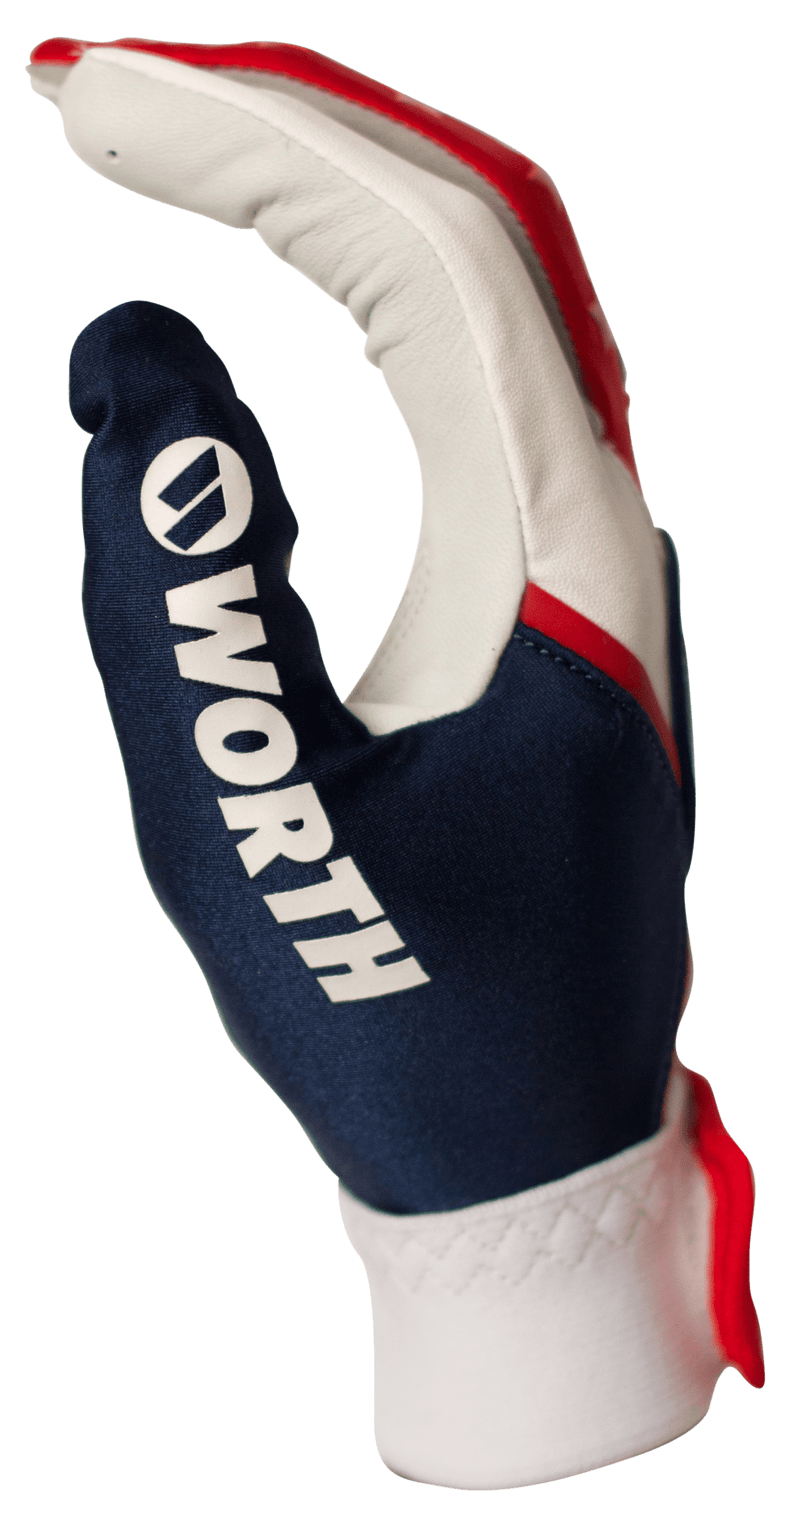 Worth Adult Red, White, and Blue Team Batting Gloves: WBATGL-RWB